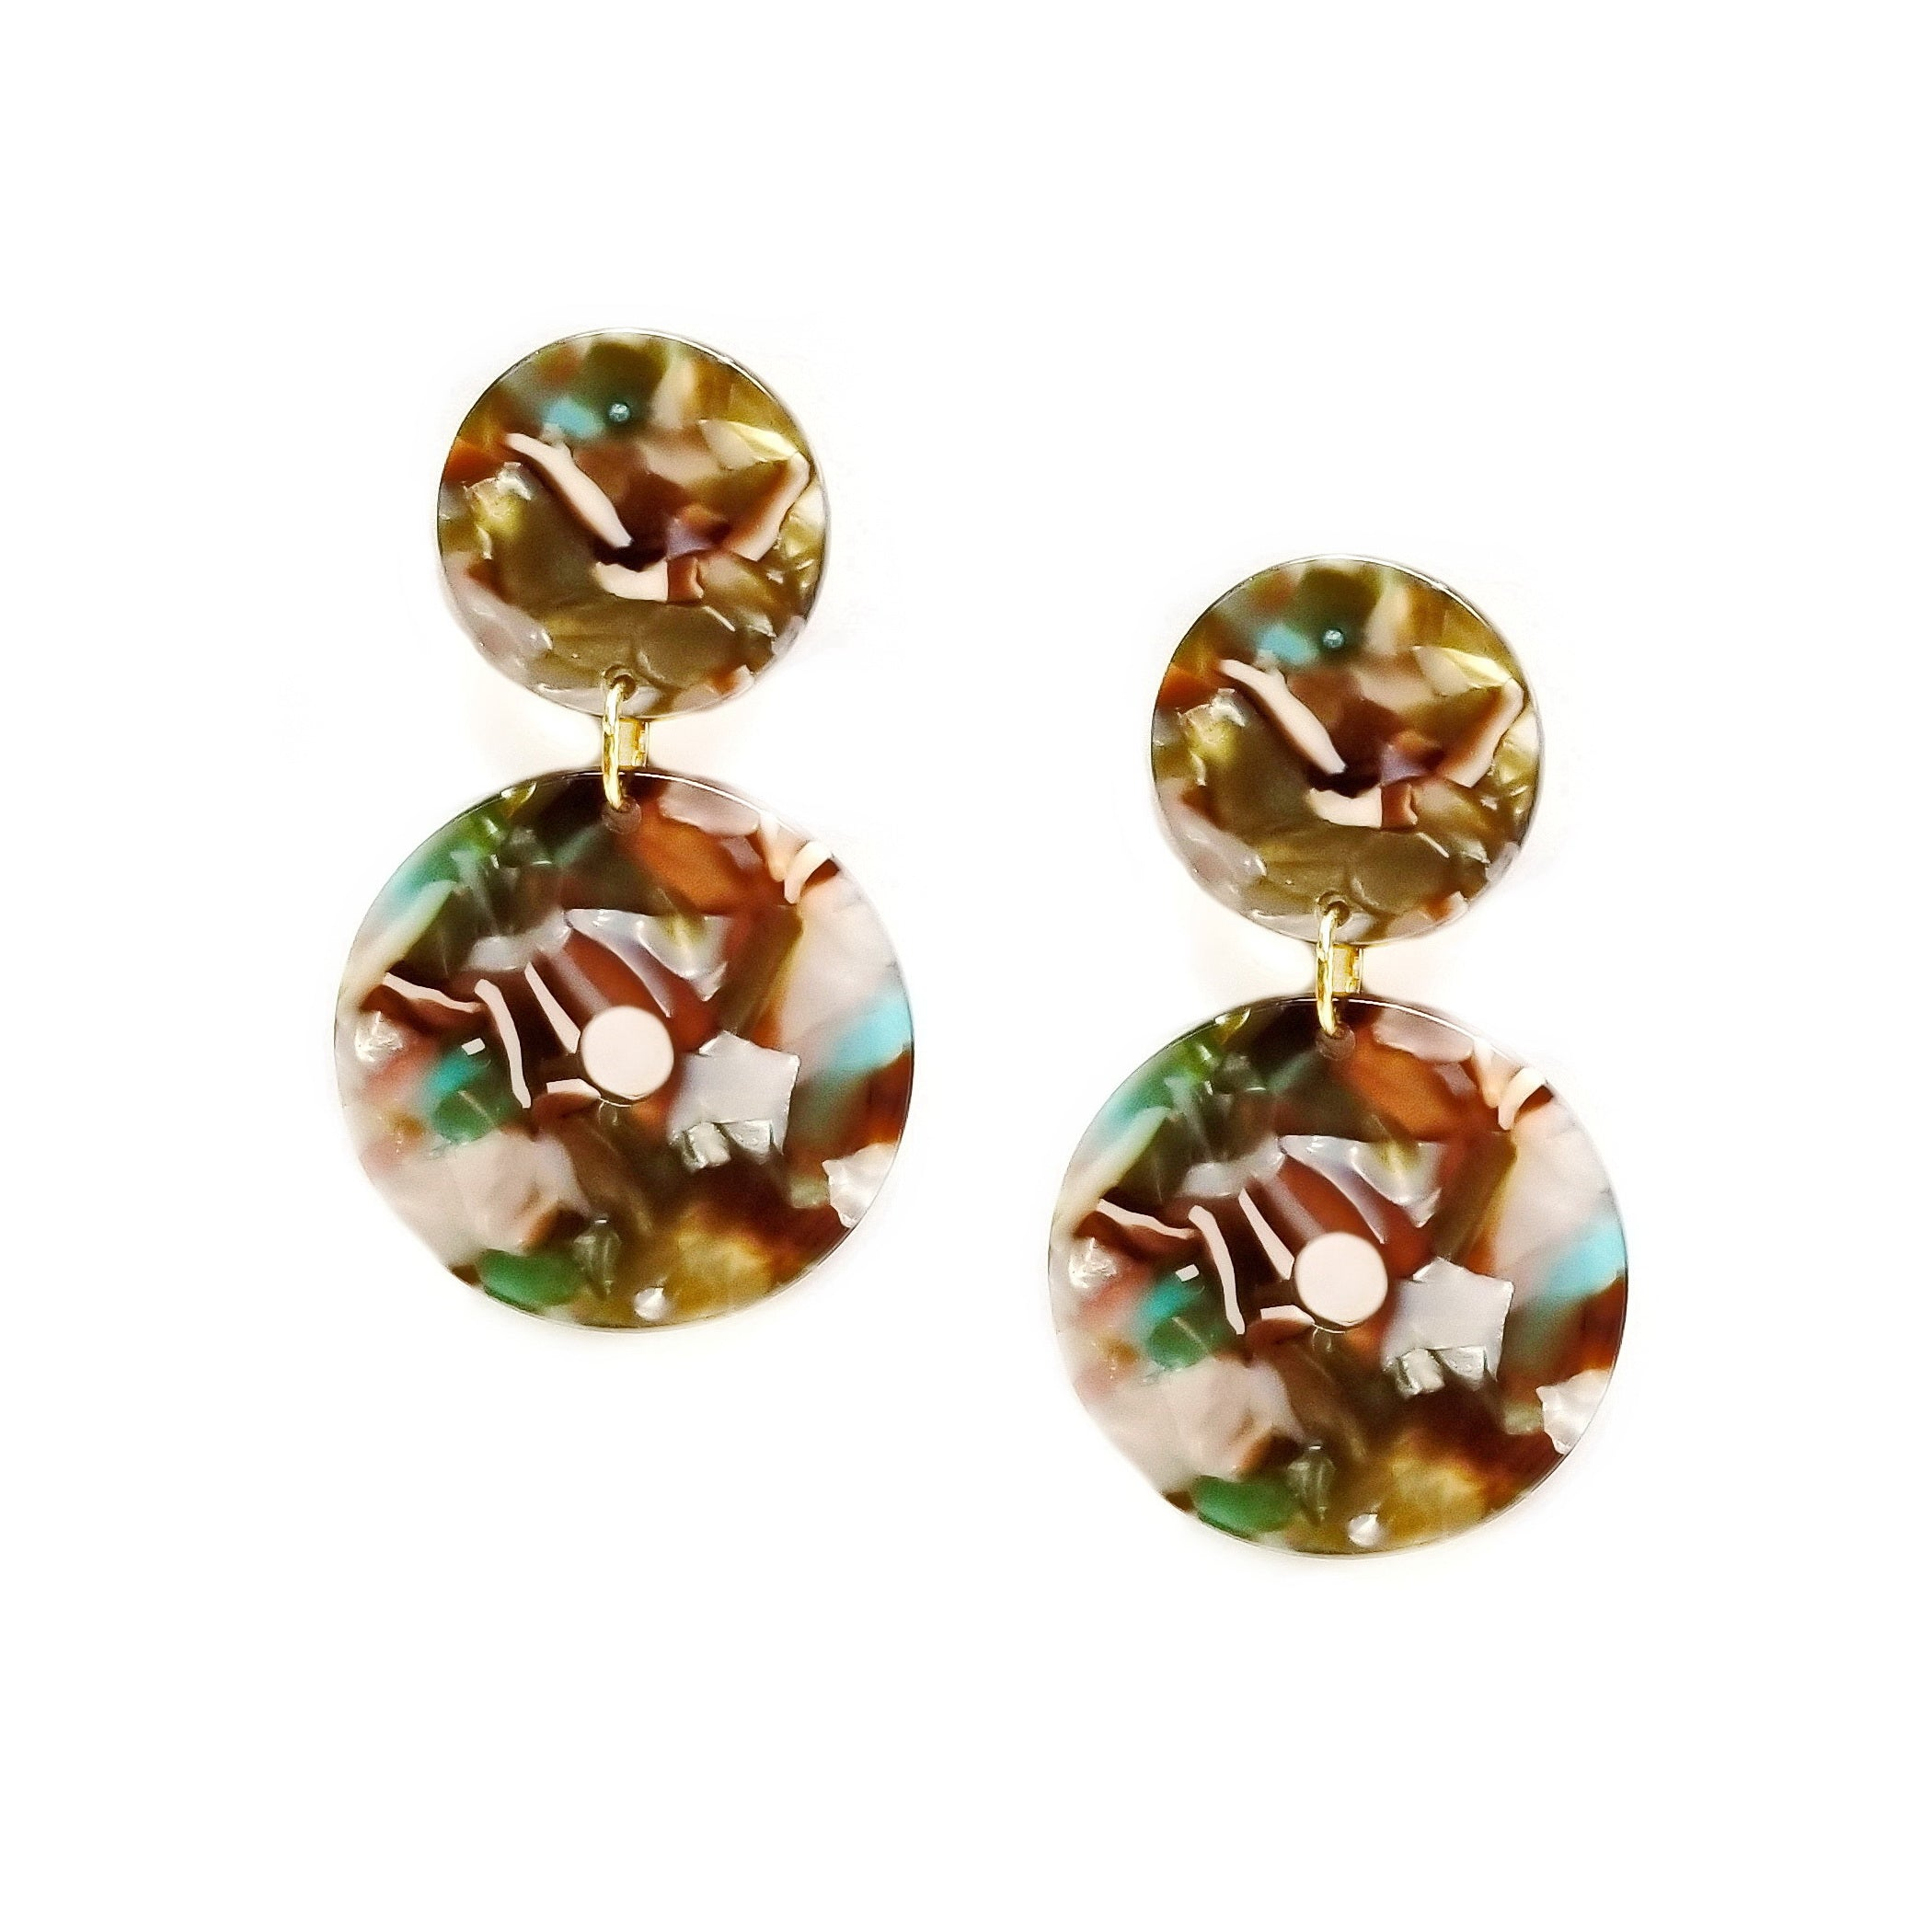 valet toucan earrings the tortoise products addition